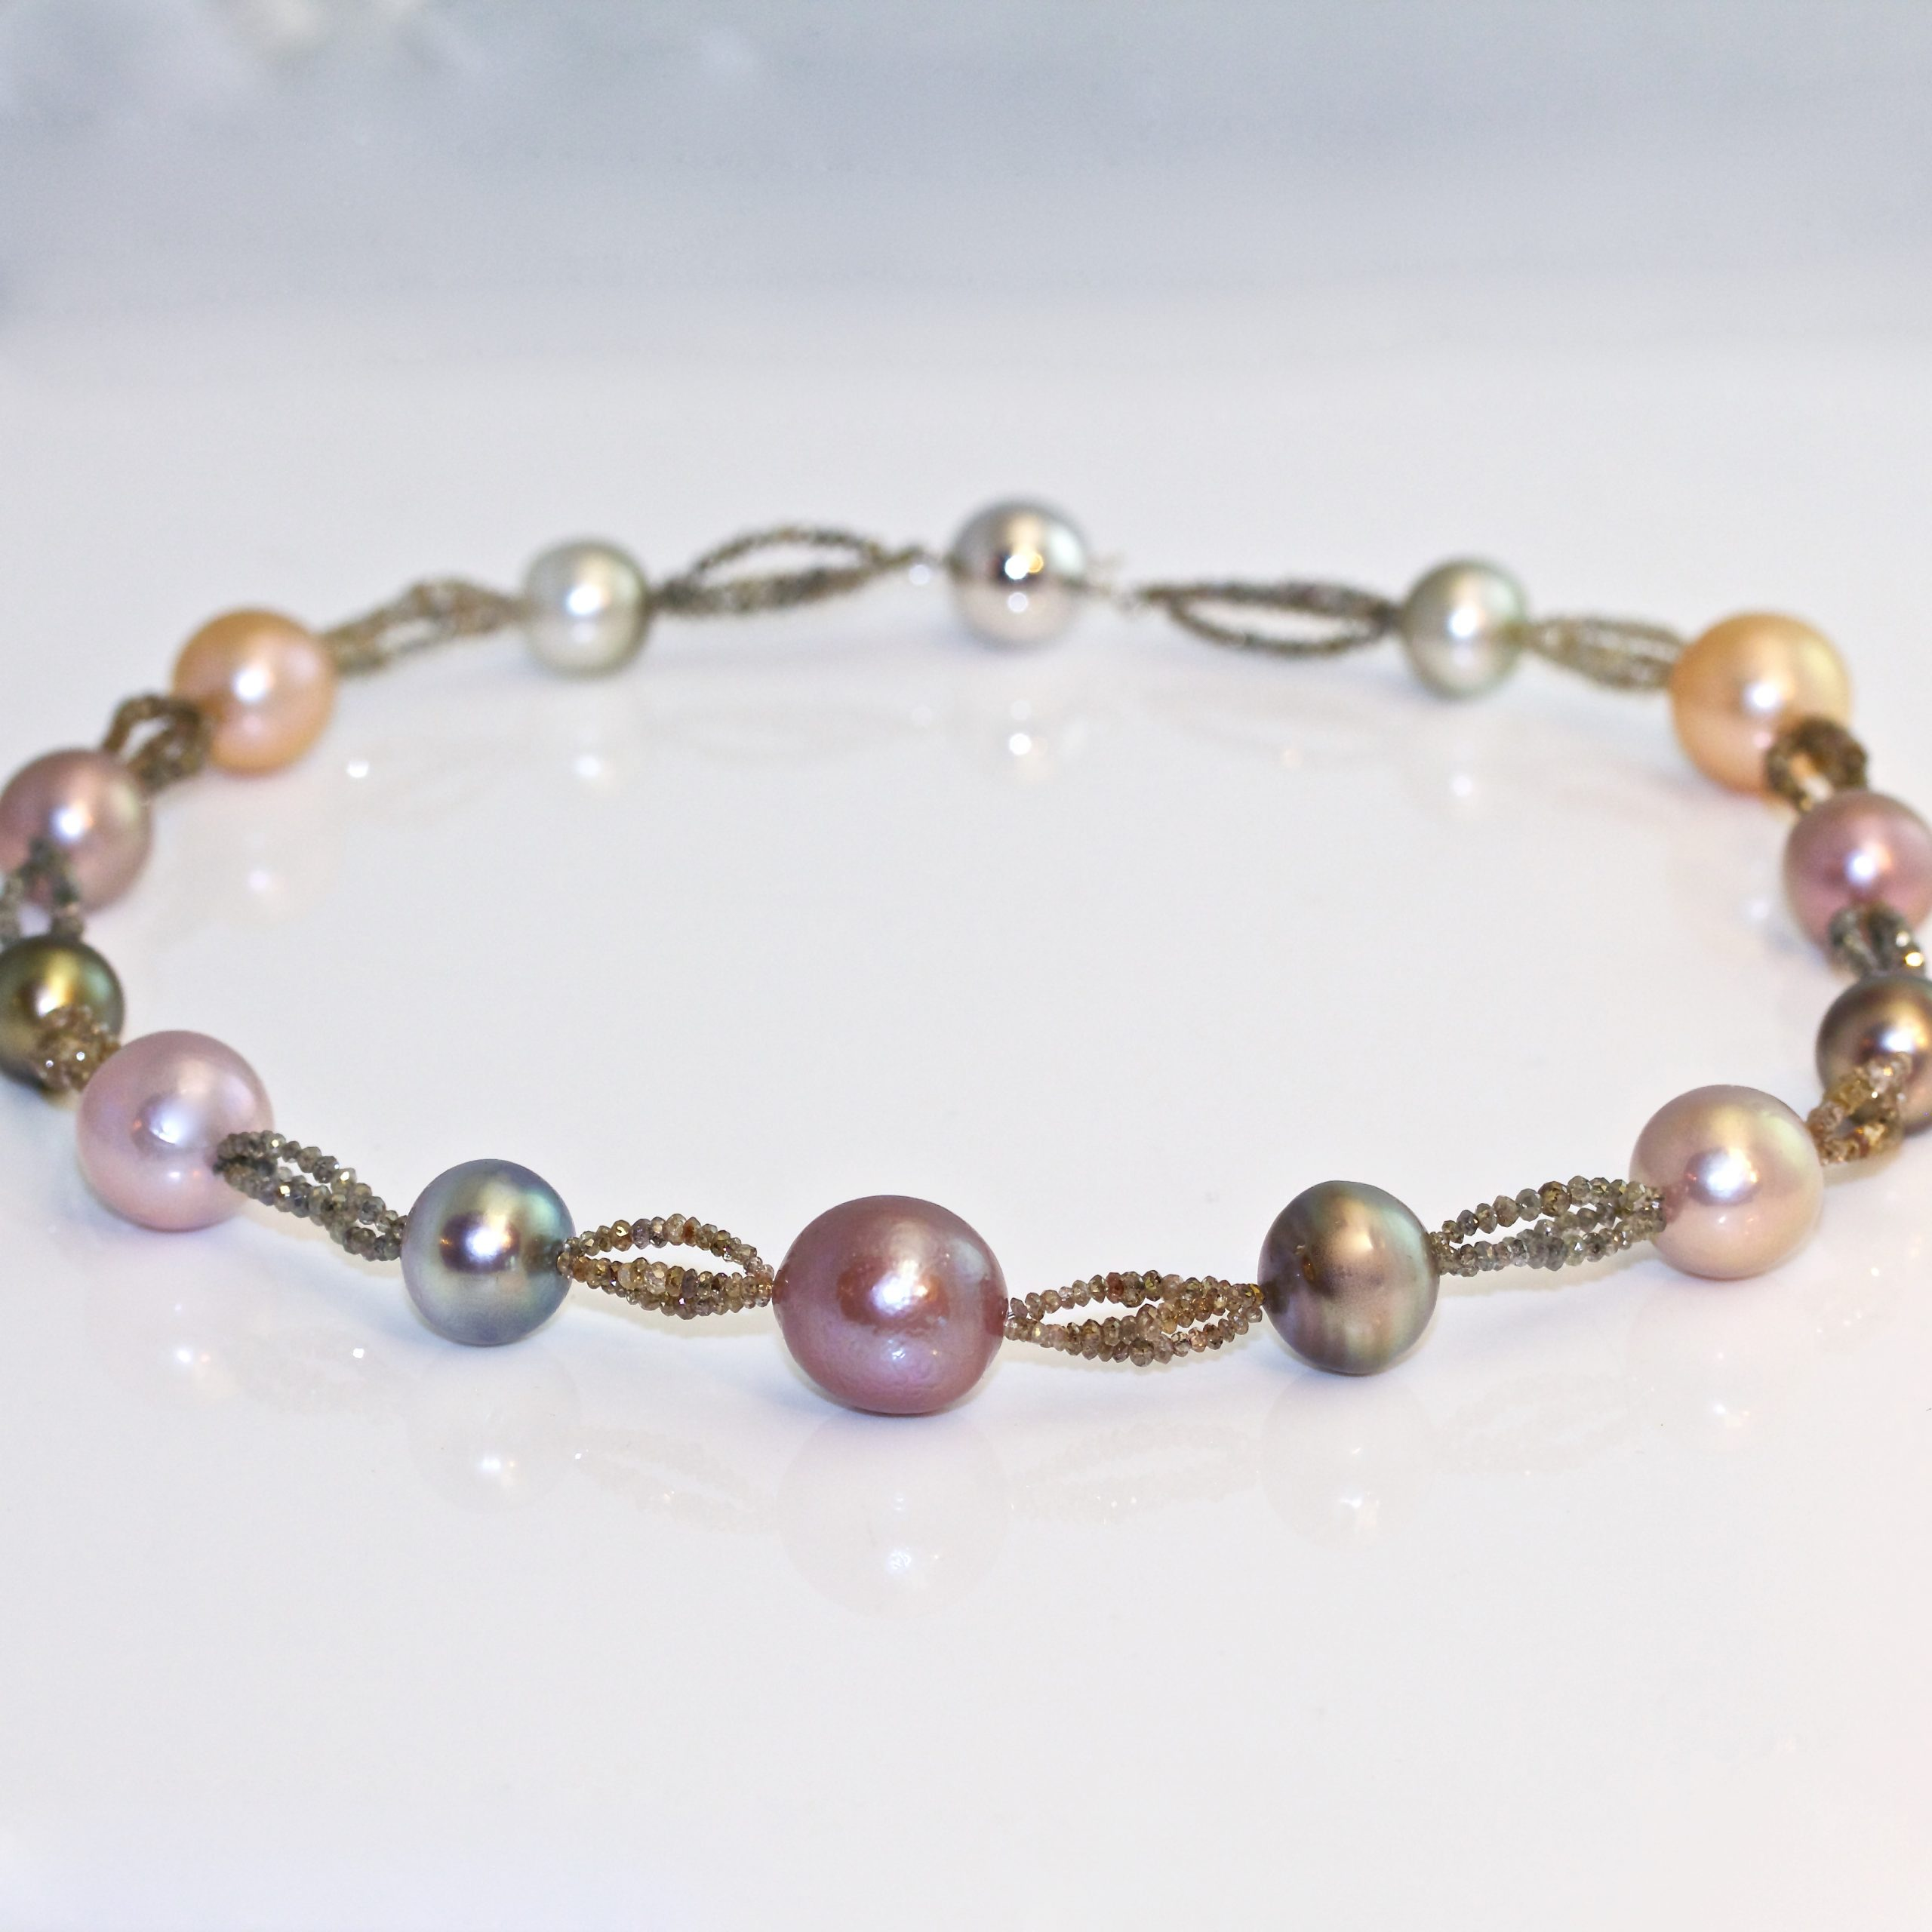 Perfect Tahitian pearl necklace